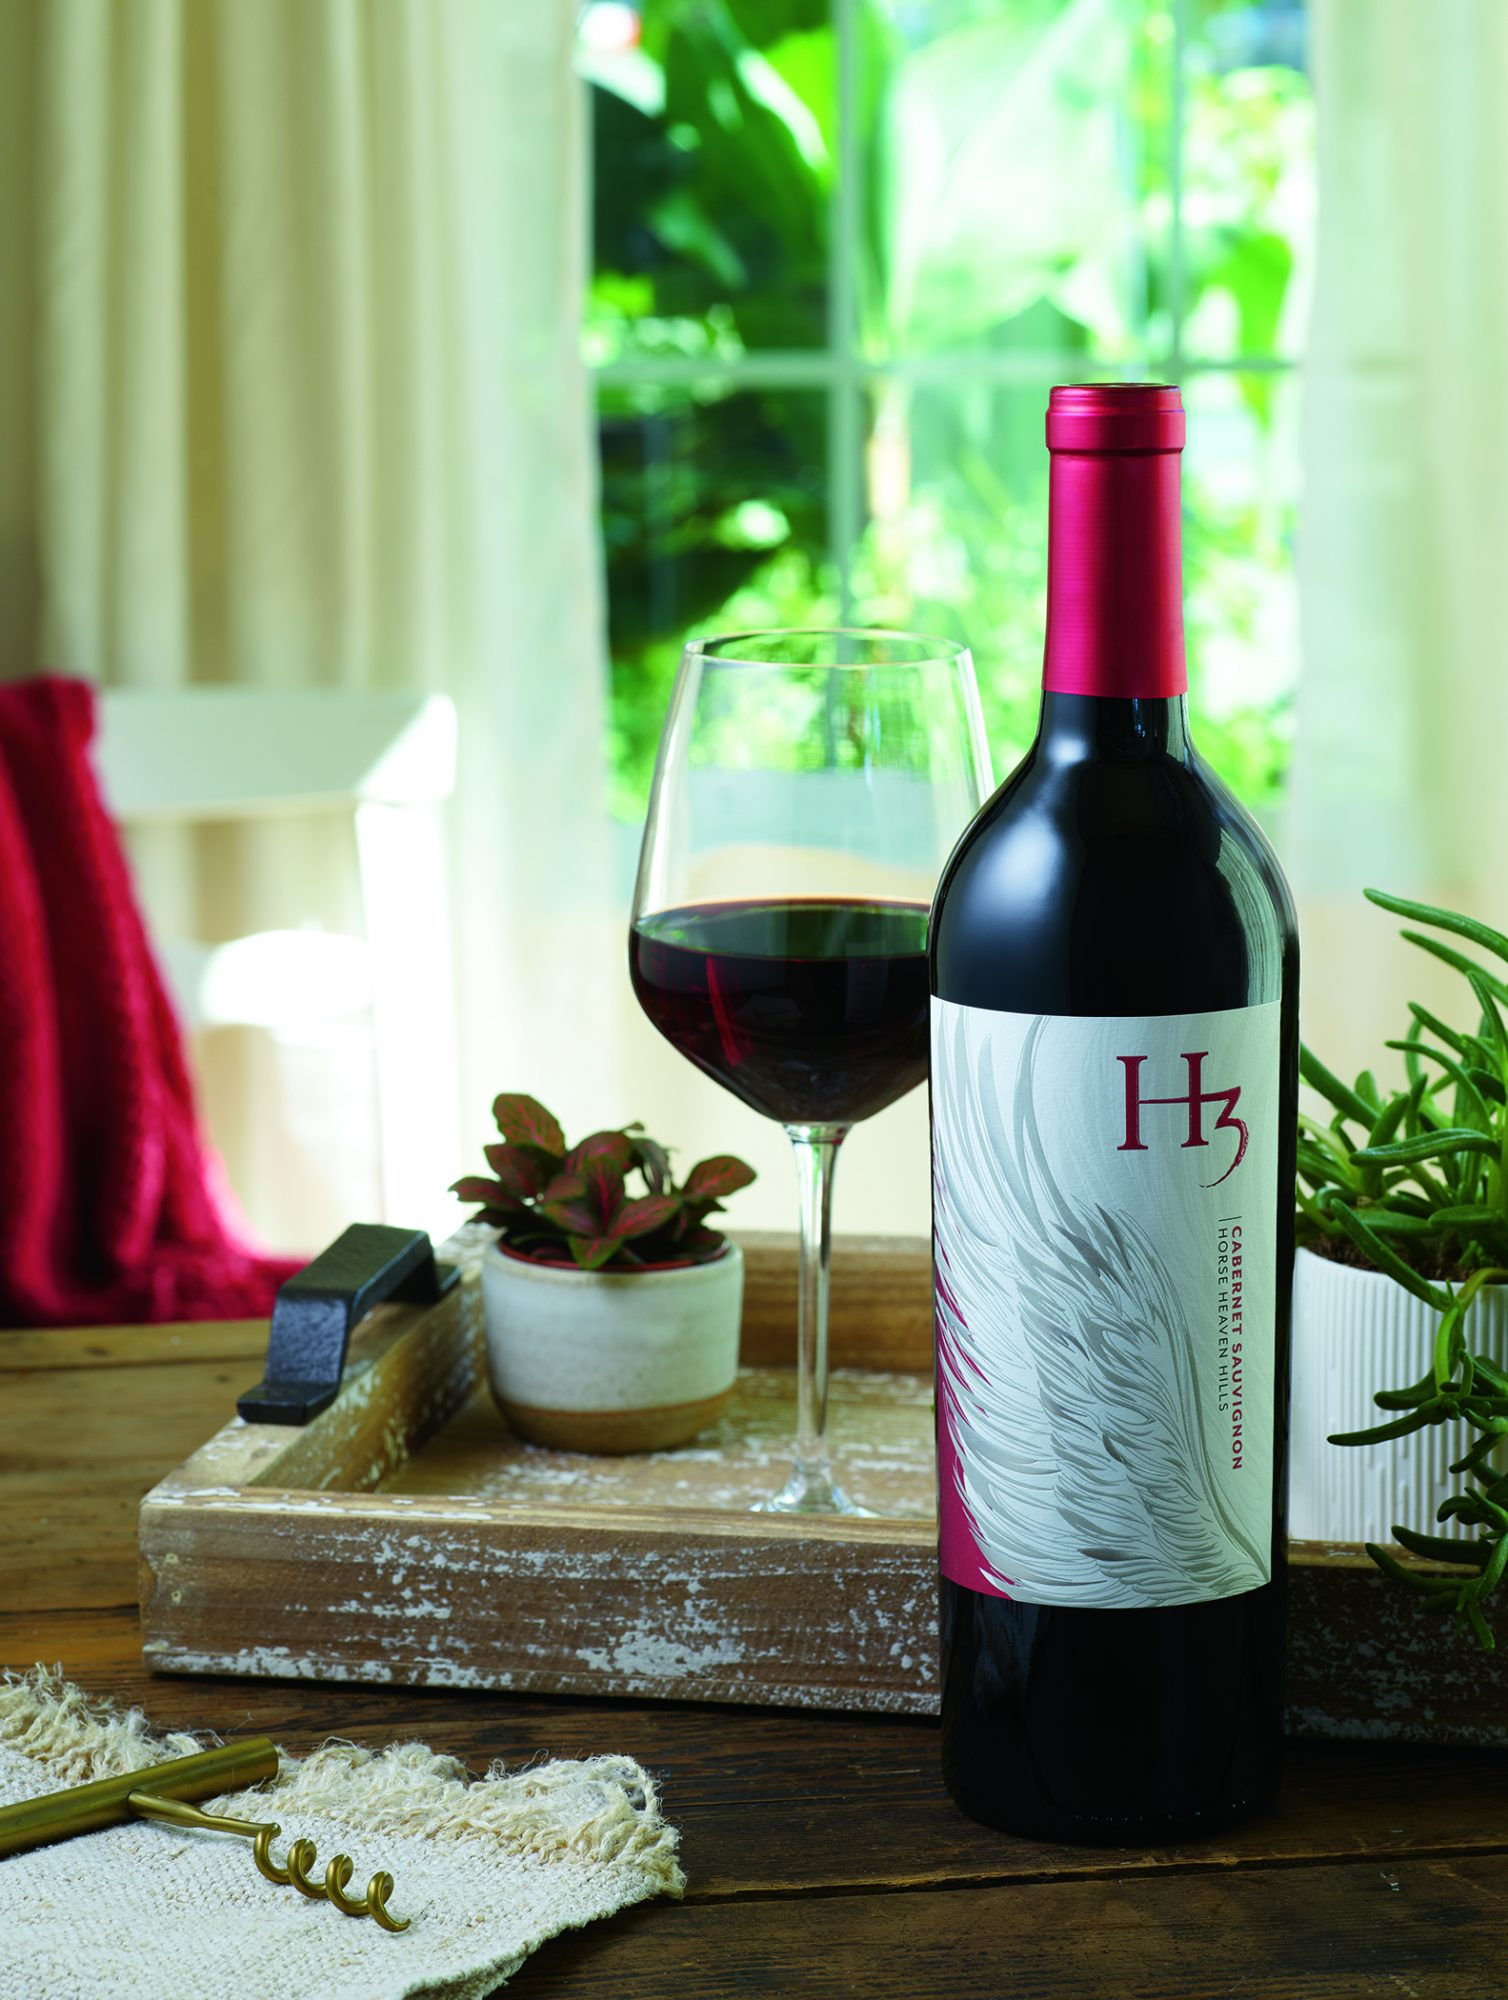 bottle of red wine and glass of red wine on wooden table with corkscrew and other accessories